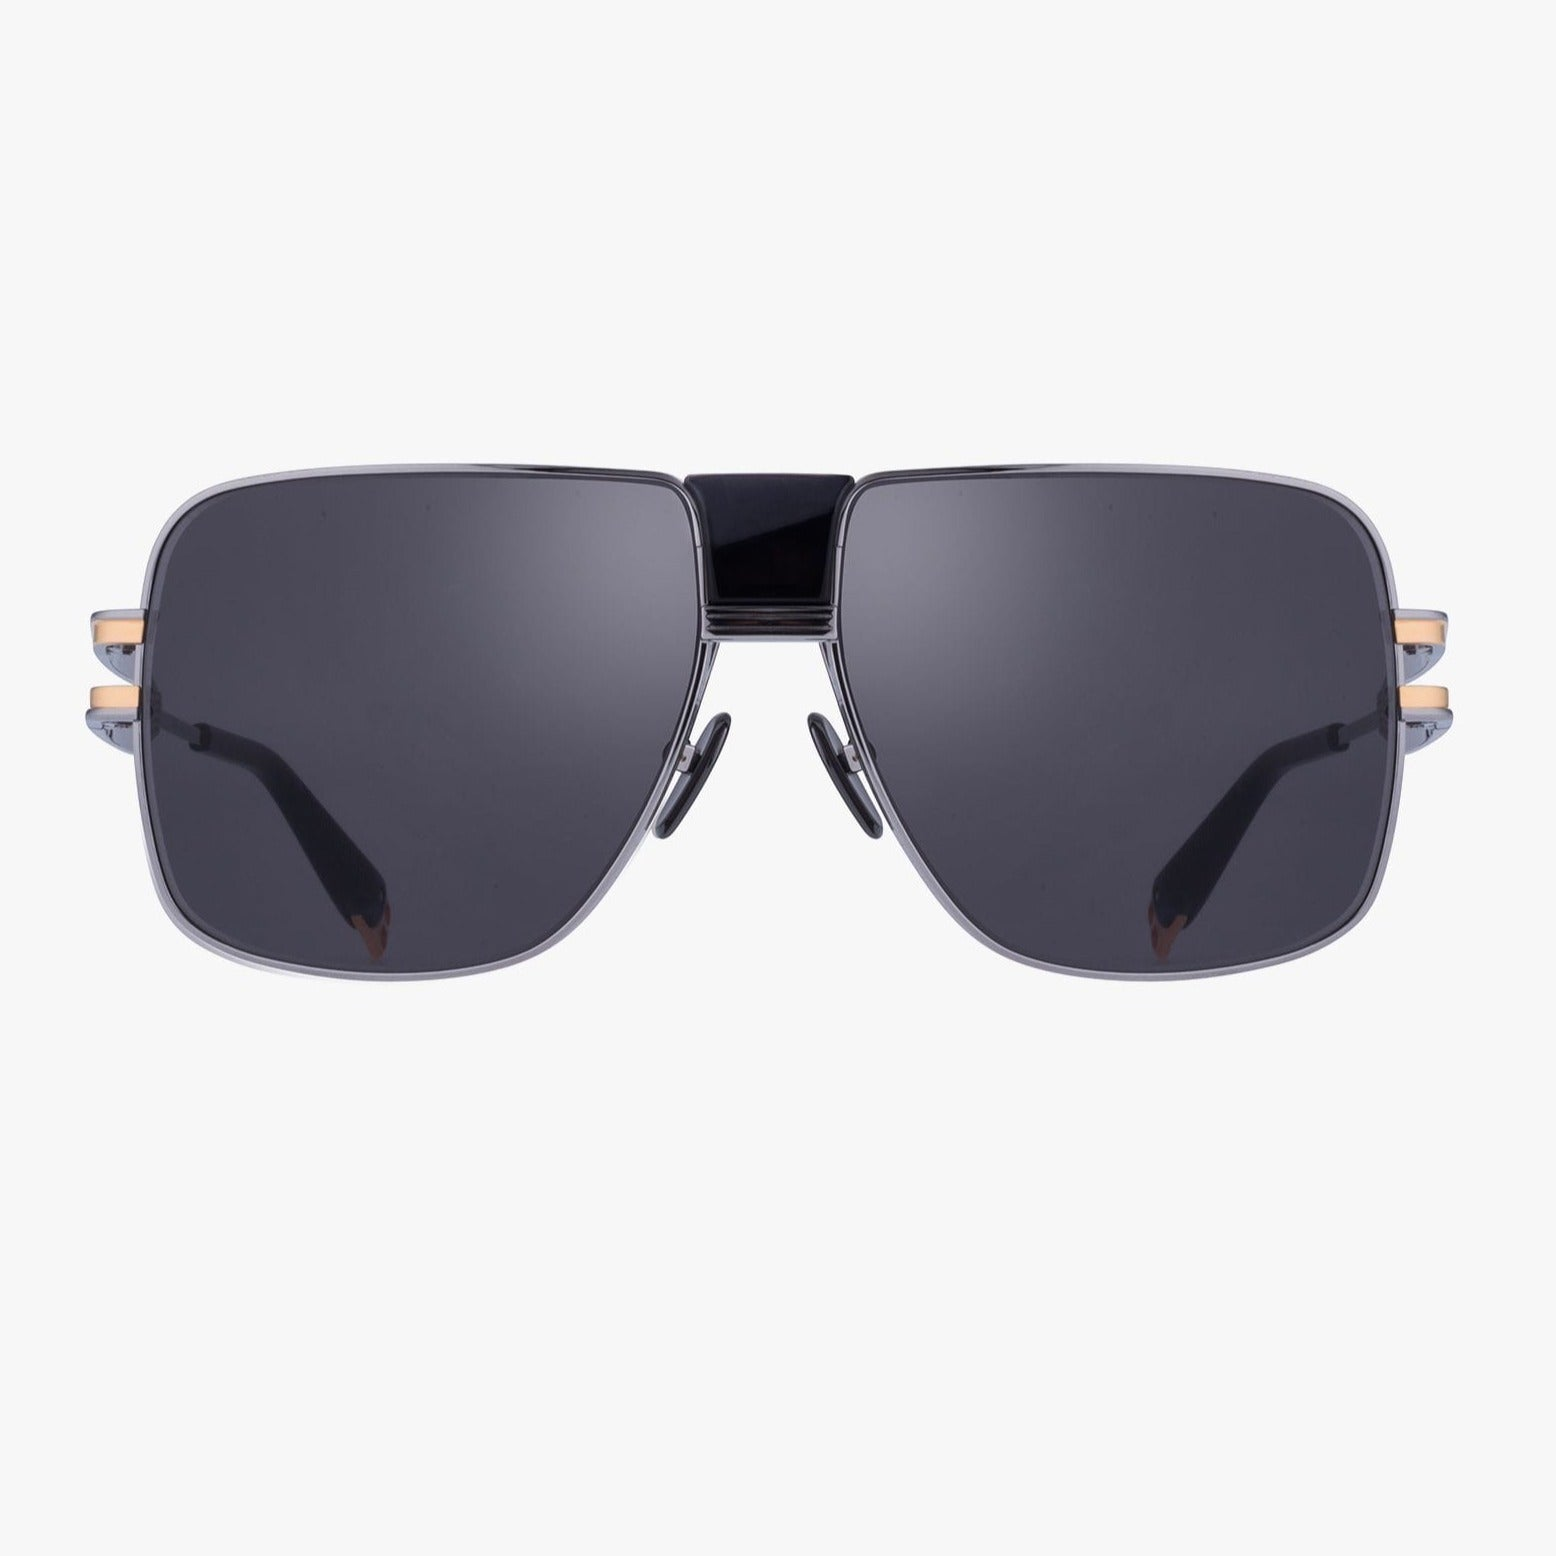 Balmain Unisex Black And Dark Grey Metal 1914 Sunglasses